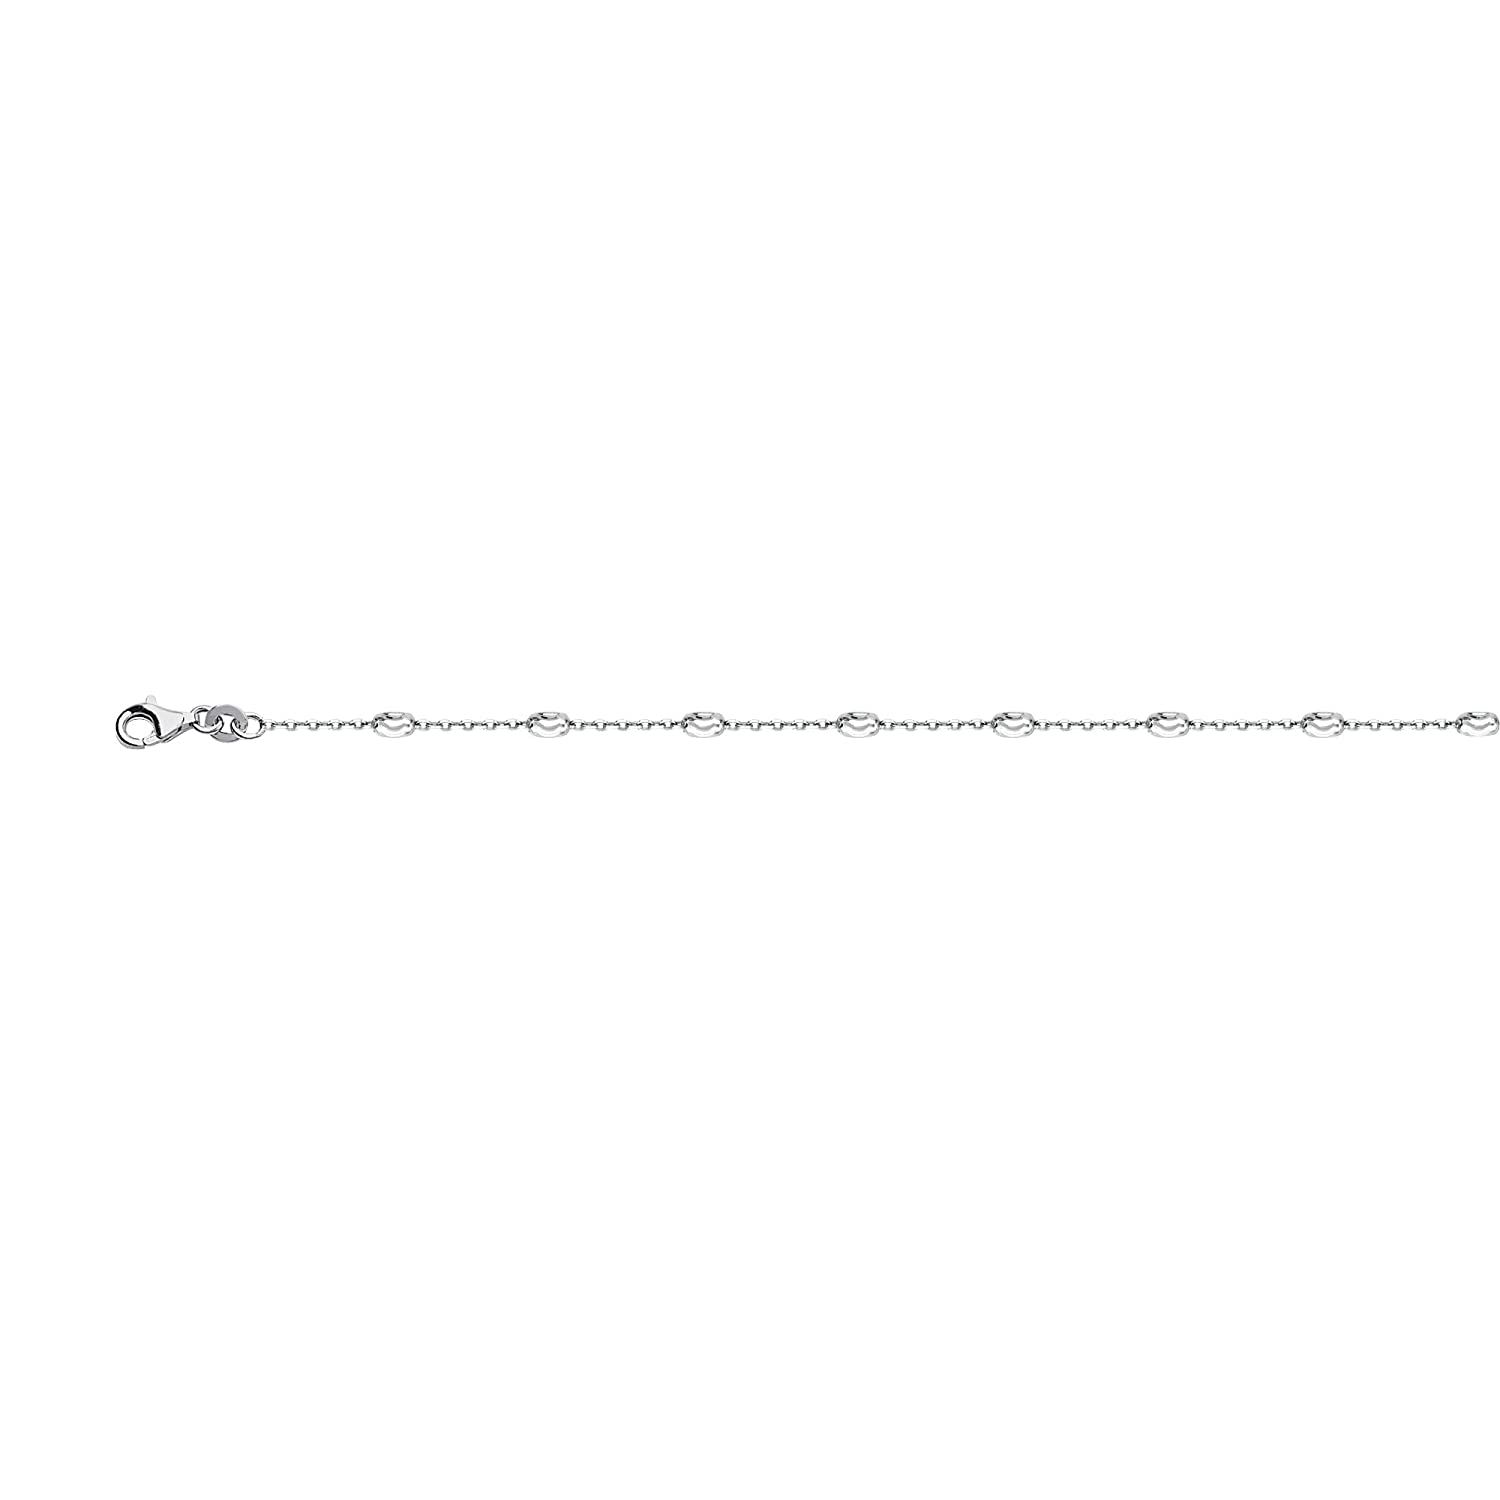 DiamondJewelryNY Silver Anklet Oval Moon Dc Stations Ankl Cable Chain